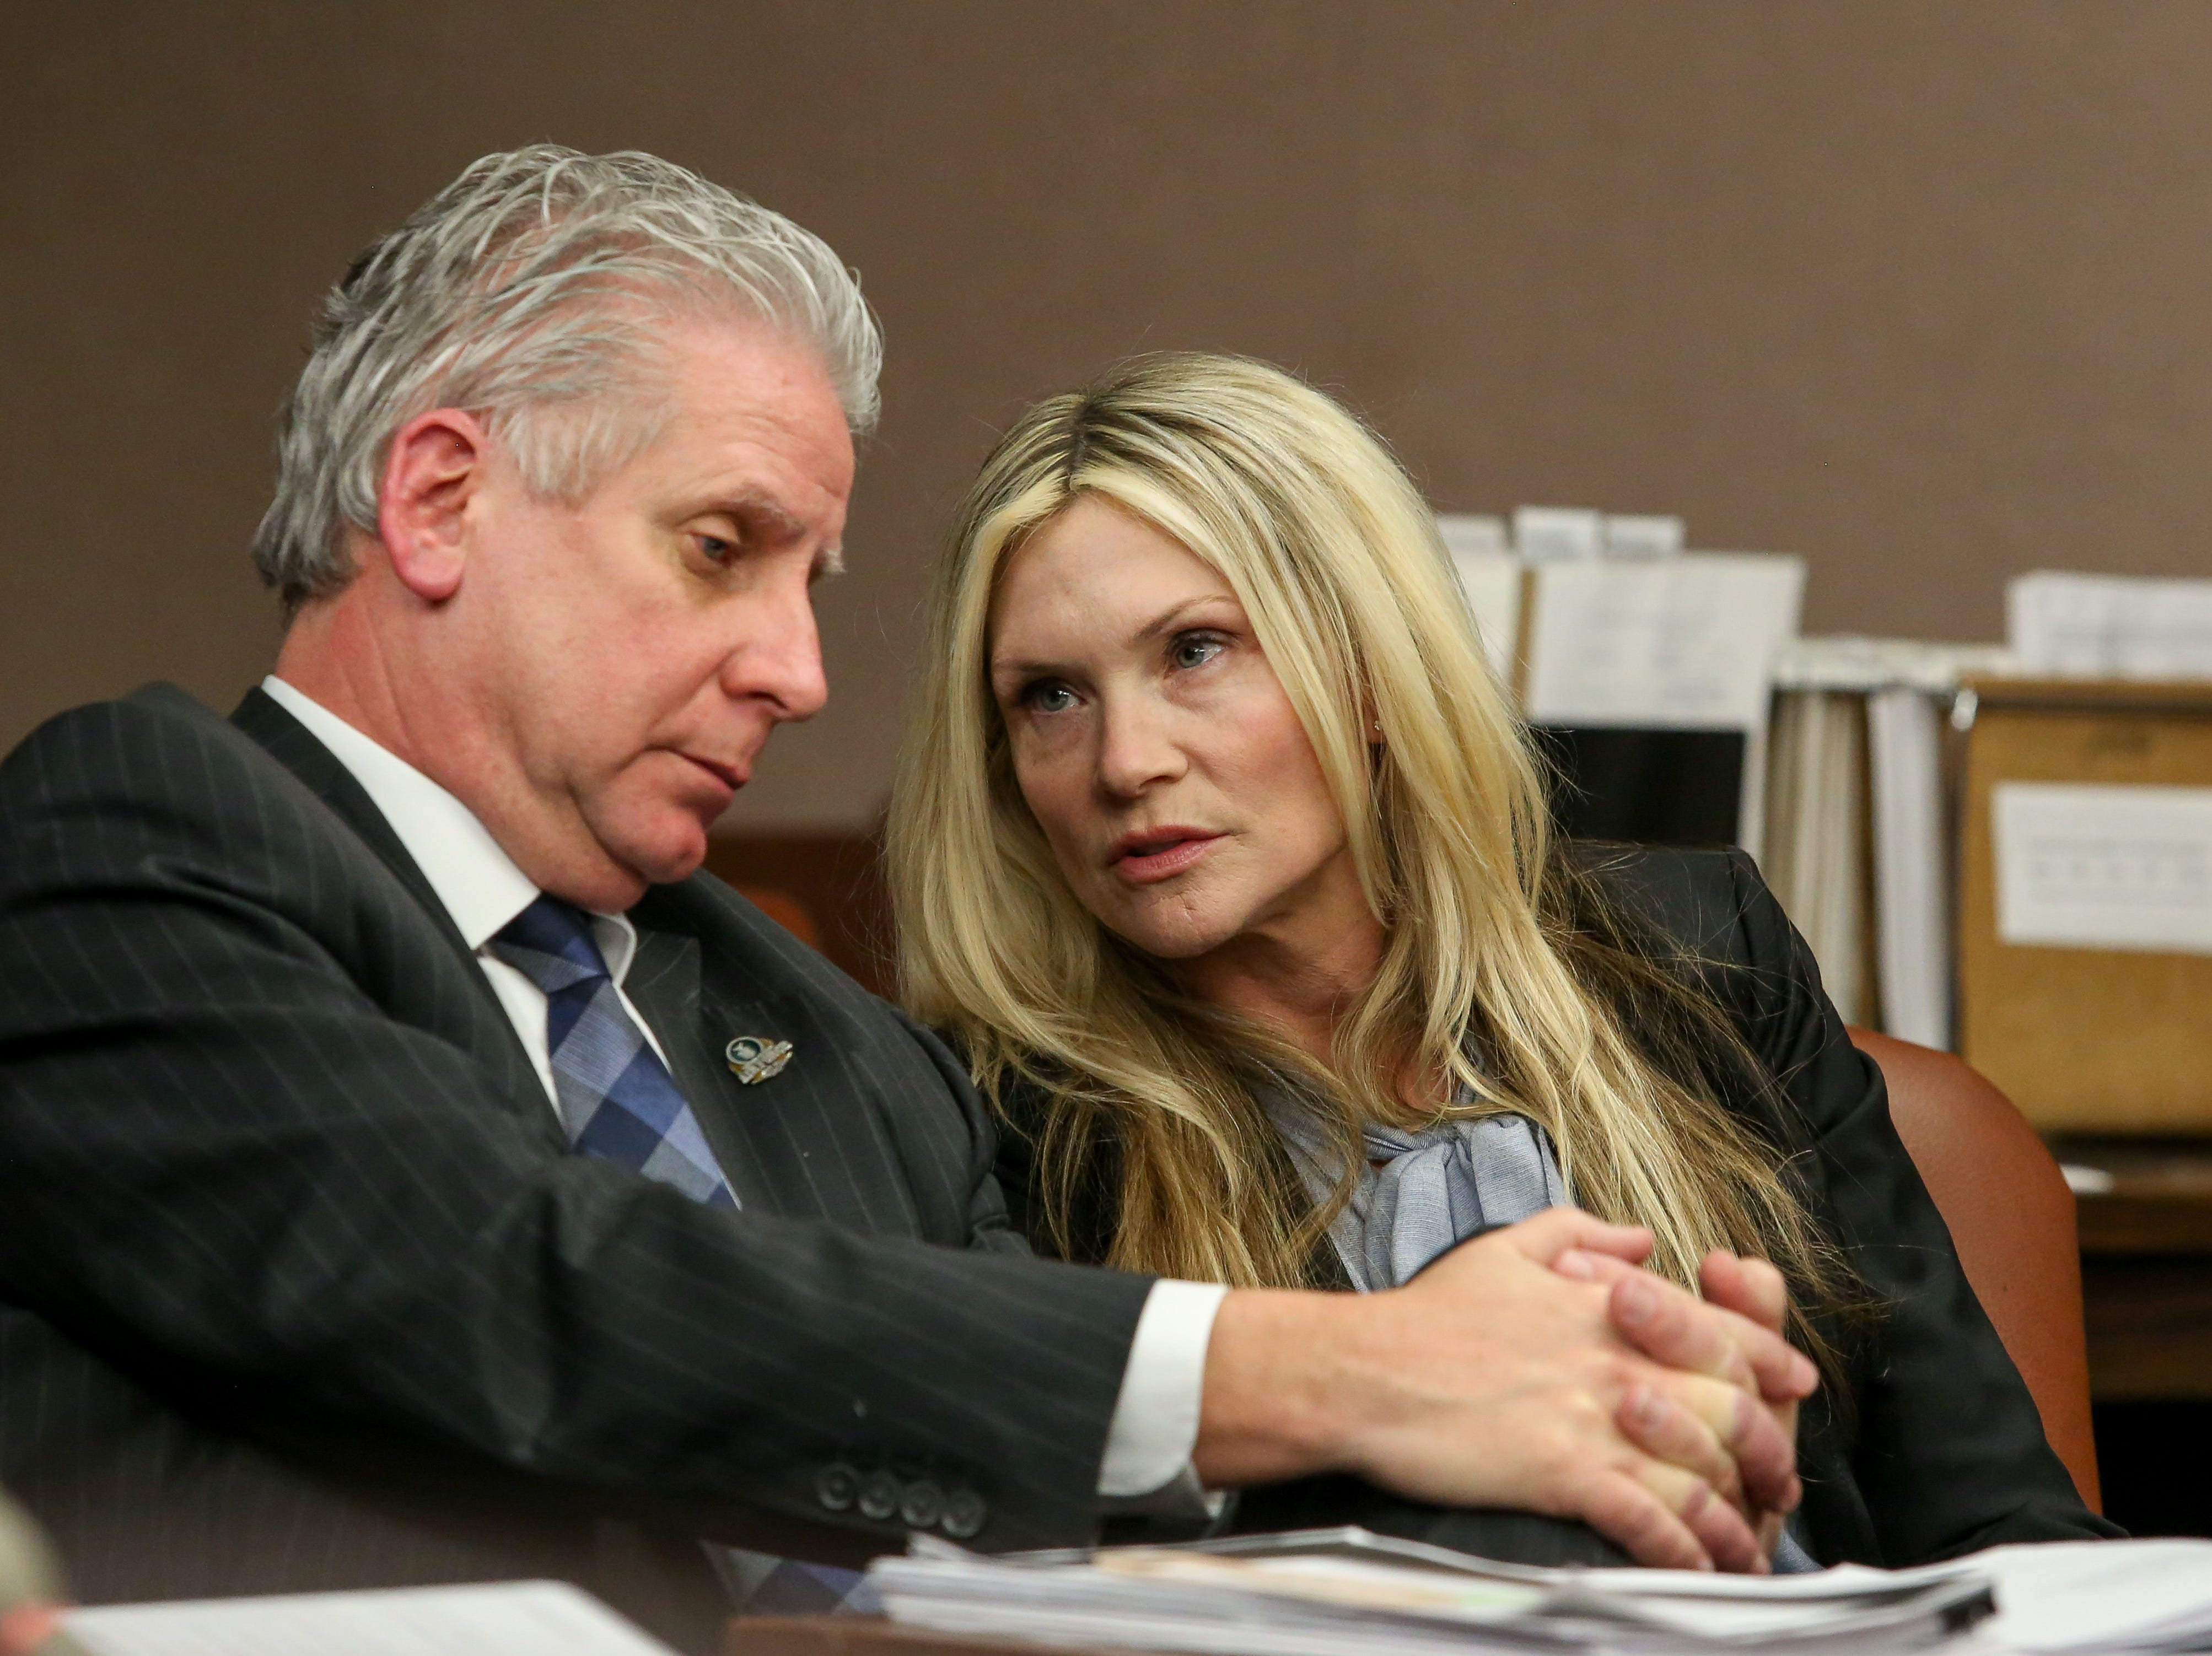 Defense attorney James Wronko with his client Amy Locane at her resentencing for a fatal 2010 auto accident inside Judge Kevin Shanahan's courtroom at the Somerset County Superior Courthouse in Somerville on February 15, 2019. Alexandra Pais/ for the Courier News